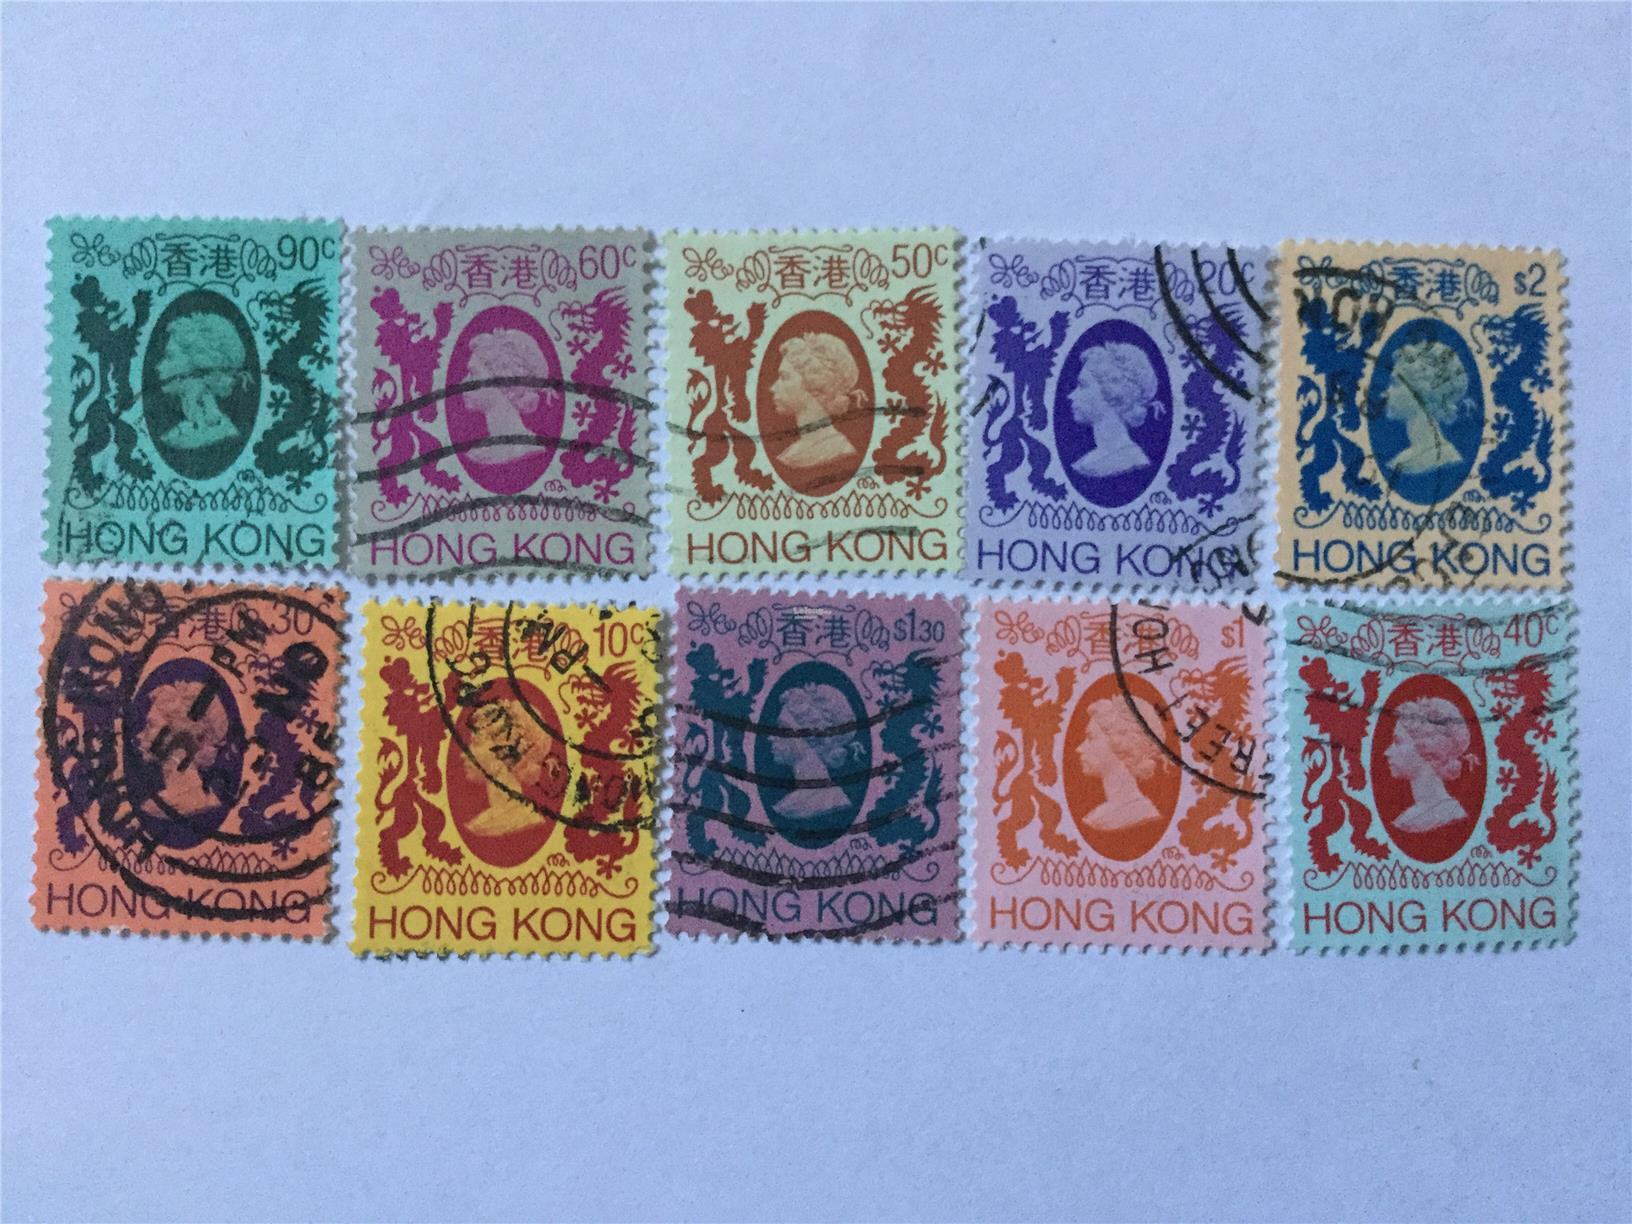 Hong Kong Nice Stamps Lot 7